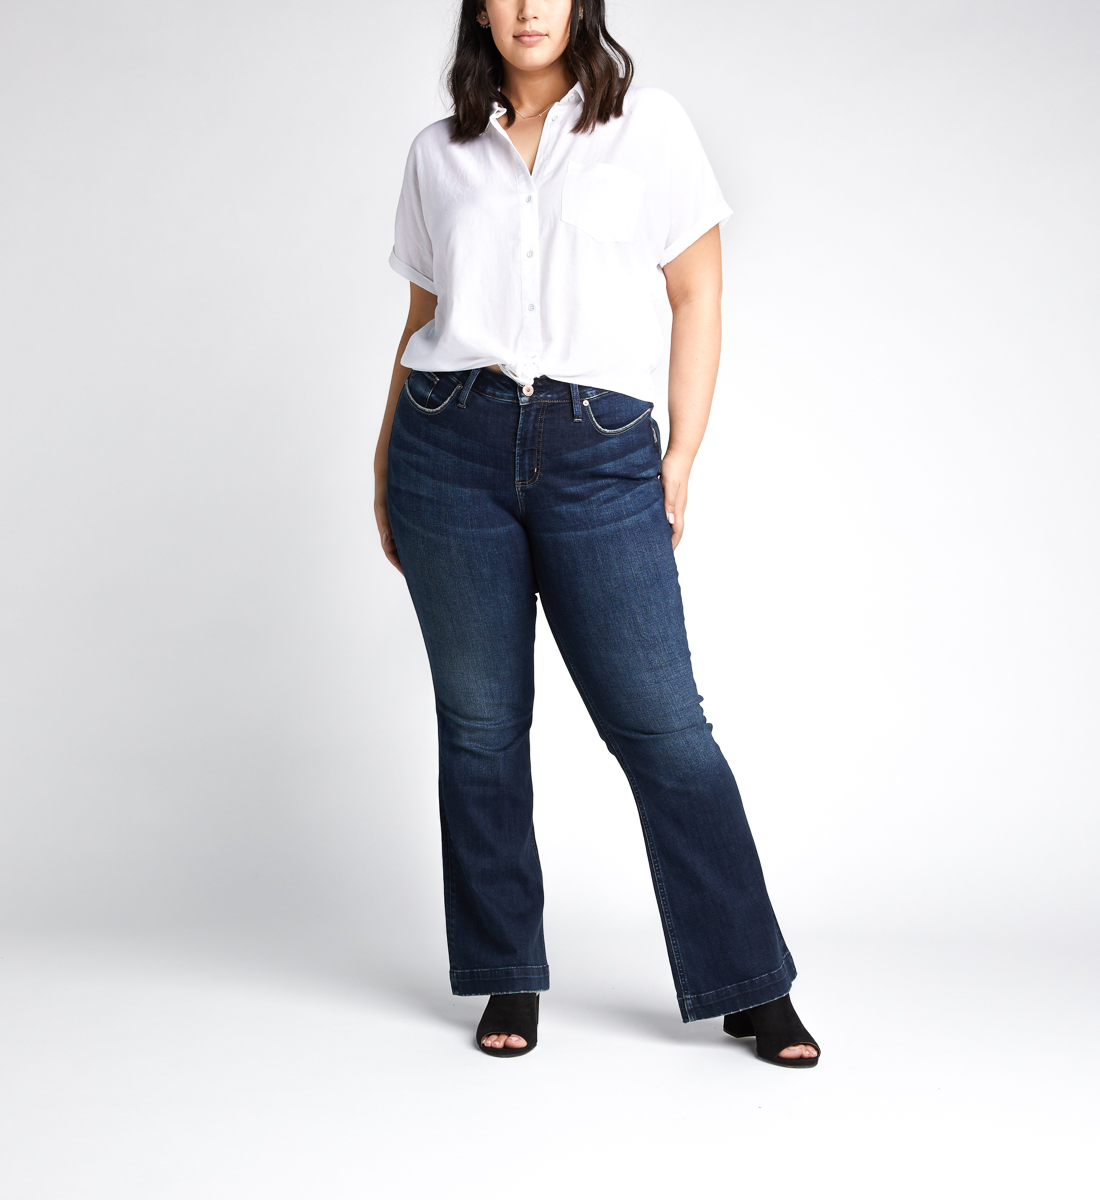 Silver Jeans Avery High Rise Trouser Pants Plus Size